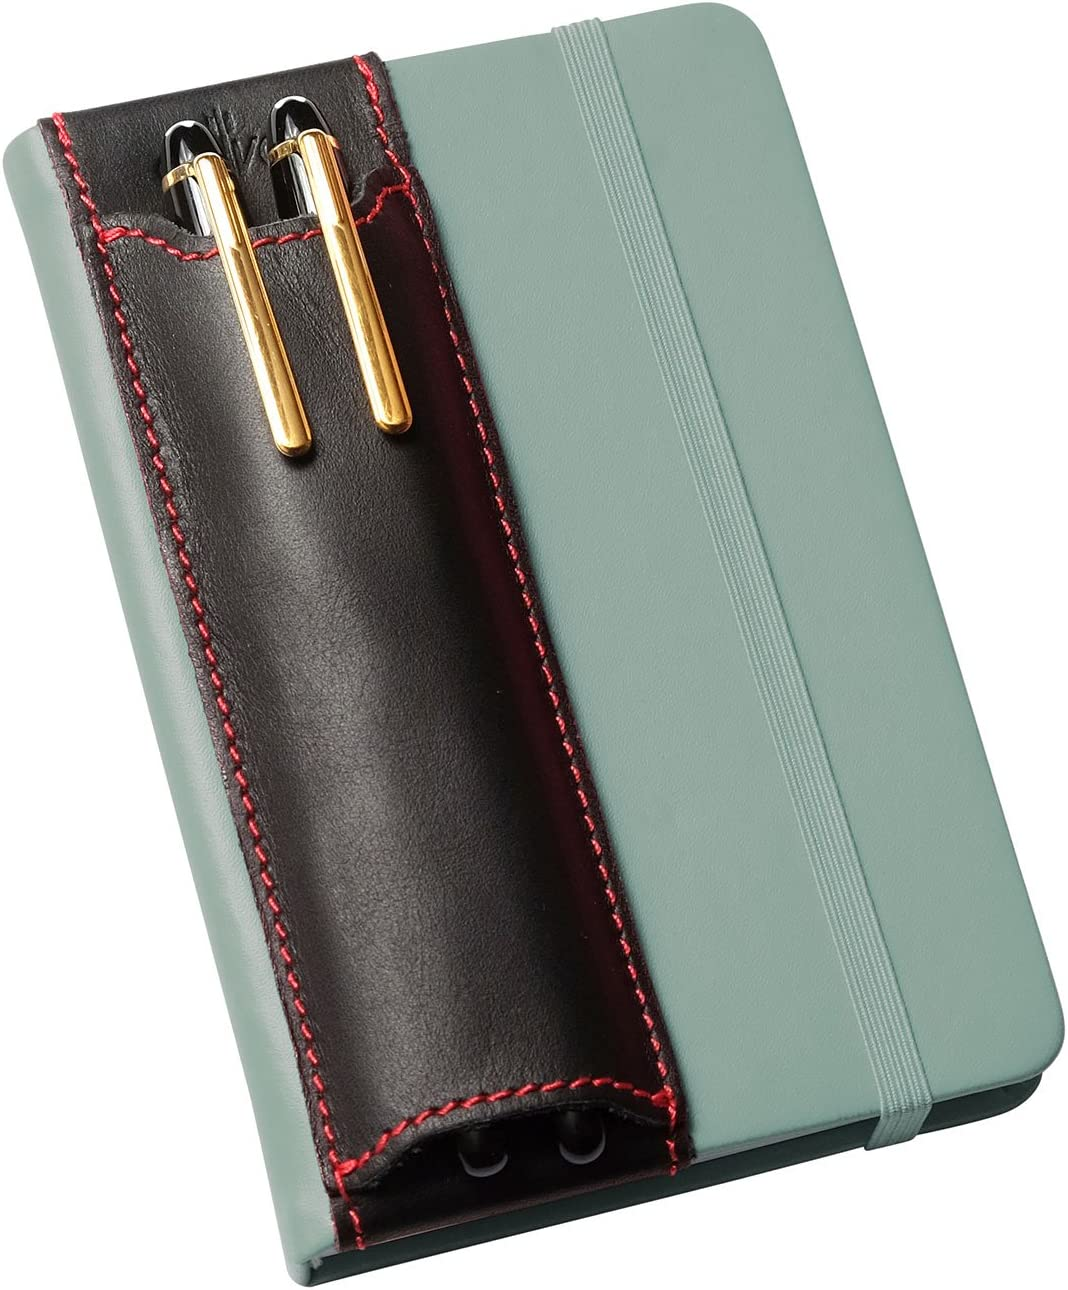 Journals Full Grain Leather Elastic Non-Adhesive Reusable QUIVER Pen Holder for Notebook Planners Tall 20.3-21.5 cm Fits A5 Notebooks Single Pen Holder and Diaries 8-8.5 Inches